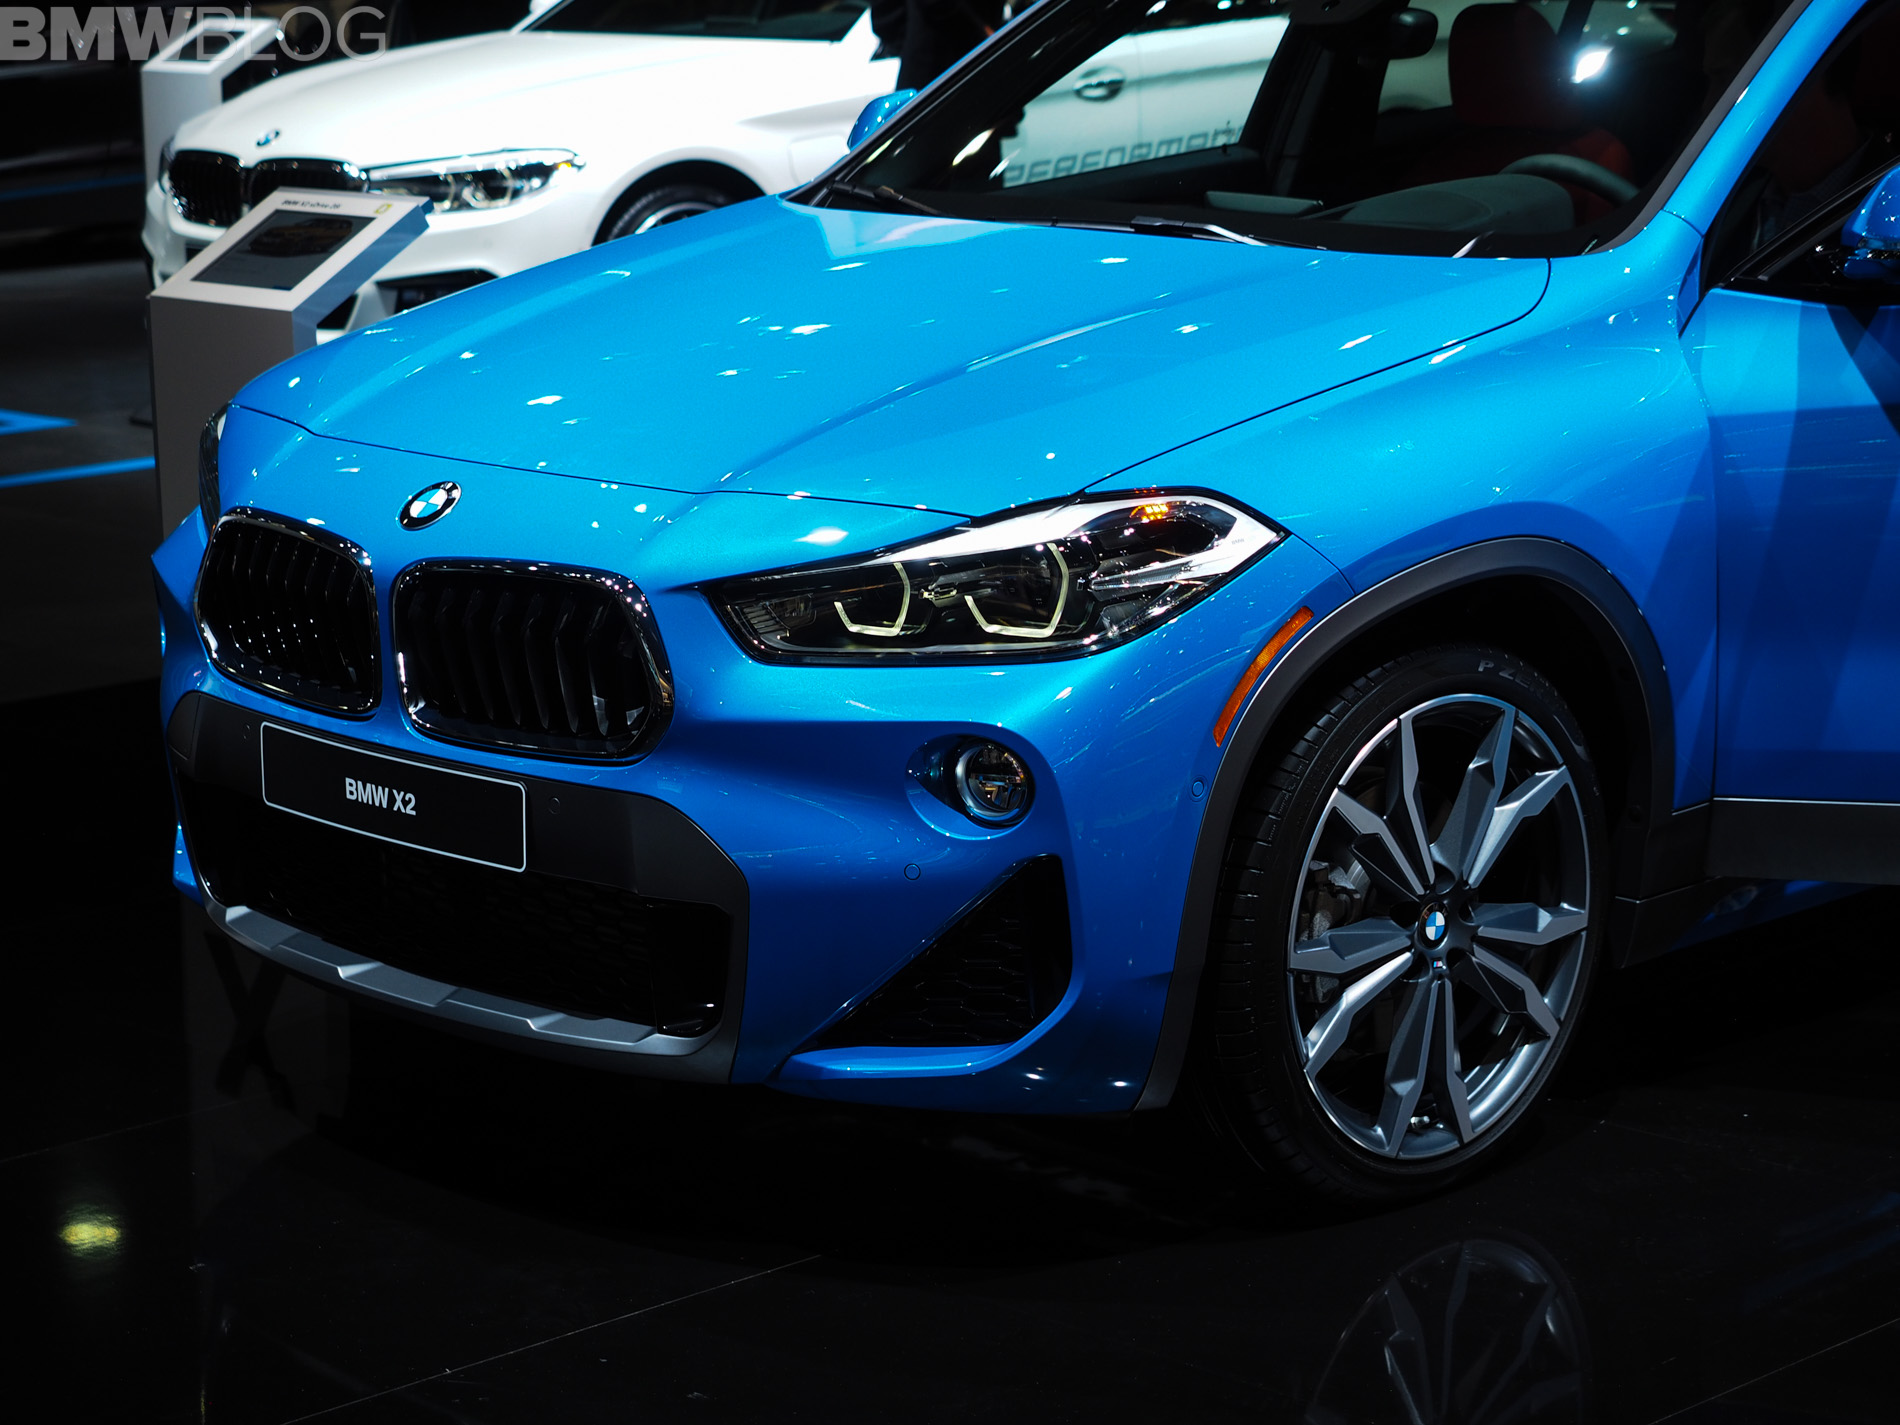 2018 detroit auto show bmw x2 in misano blue. Black Bedroom Furniture Sets. Home Design Ideas